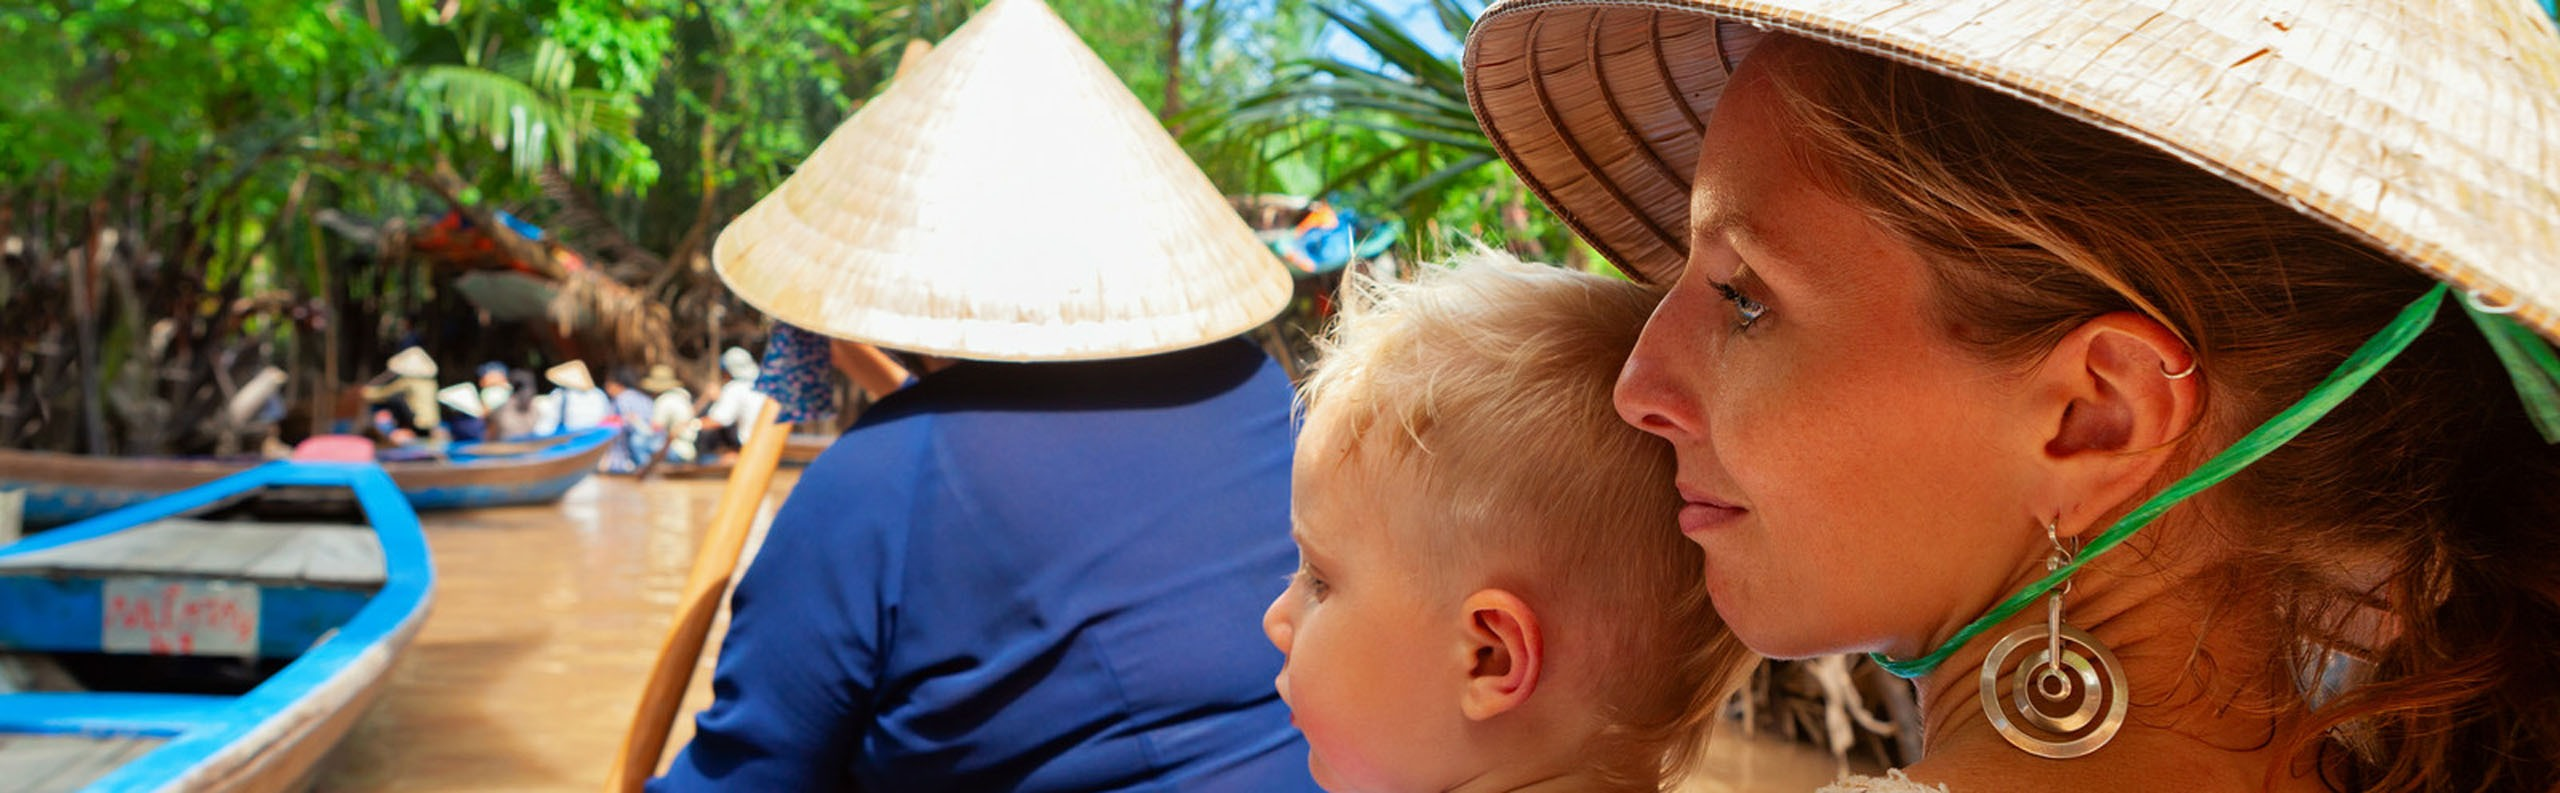 Travel Vietnam with Kids - Family Holiday